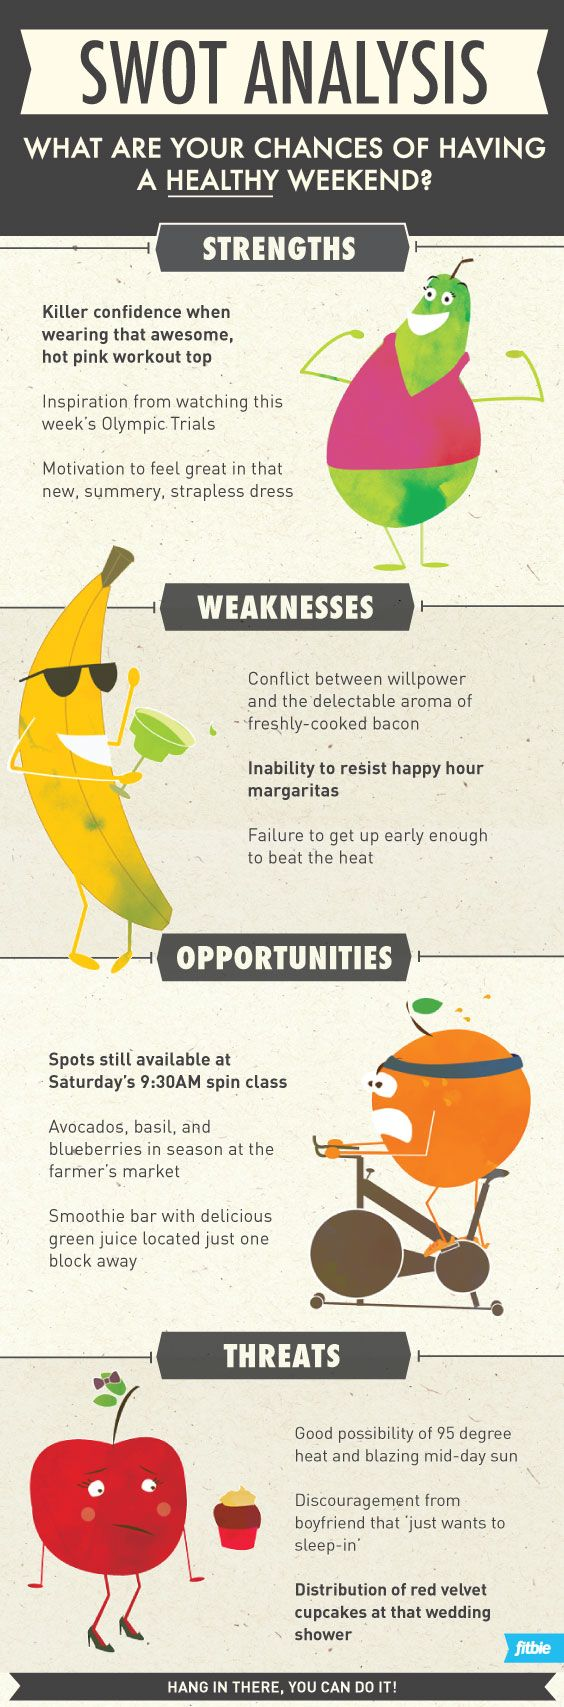 Fitbie Original: What are your chances of having a healthy weekend?: Healthy Analysis, Healthy Weekend, Healthy Lifestyle, Swot Analysis, Healthy Food, Eating Healthy, Velvet Cupcakes, Healthy Recipes, Analysis Infographic